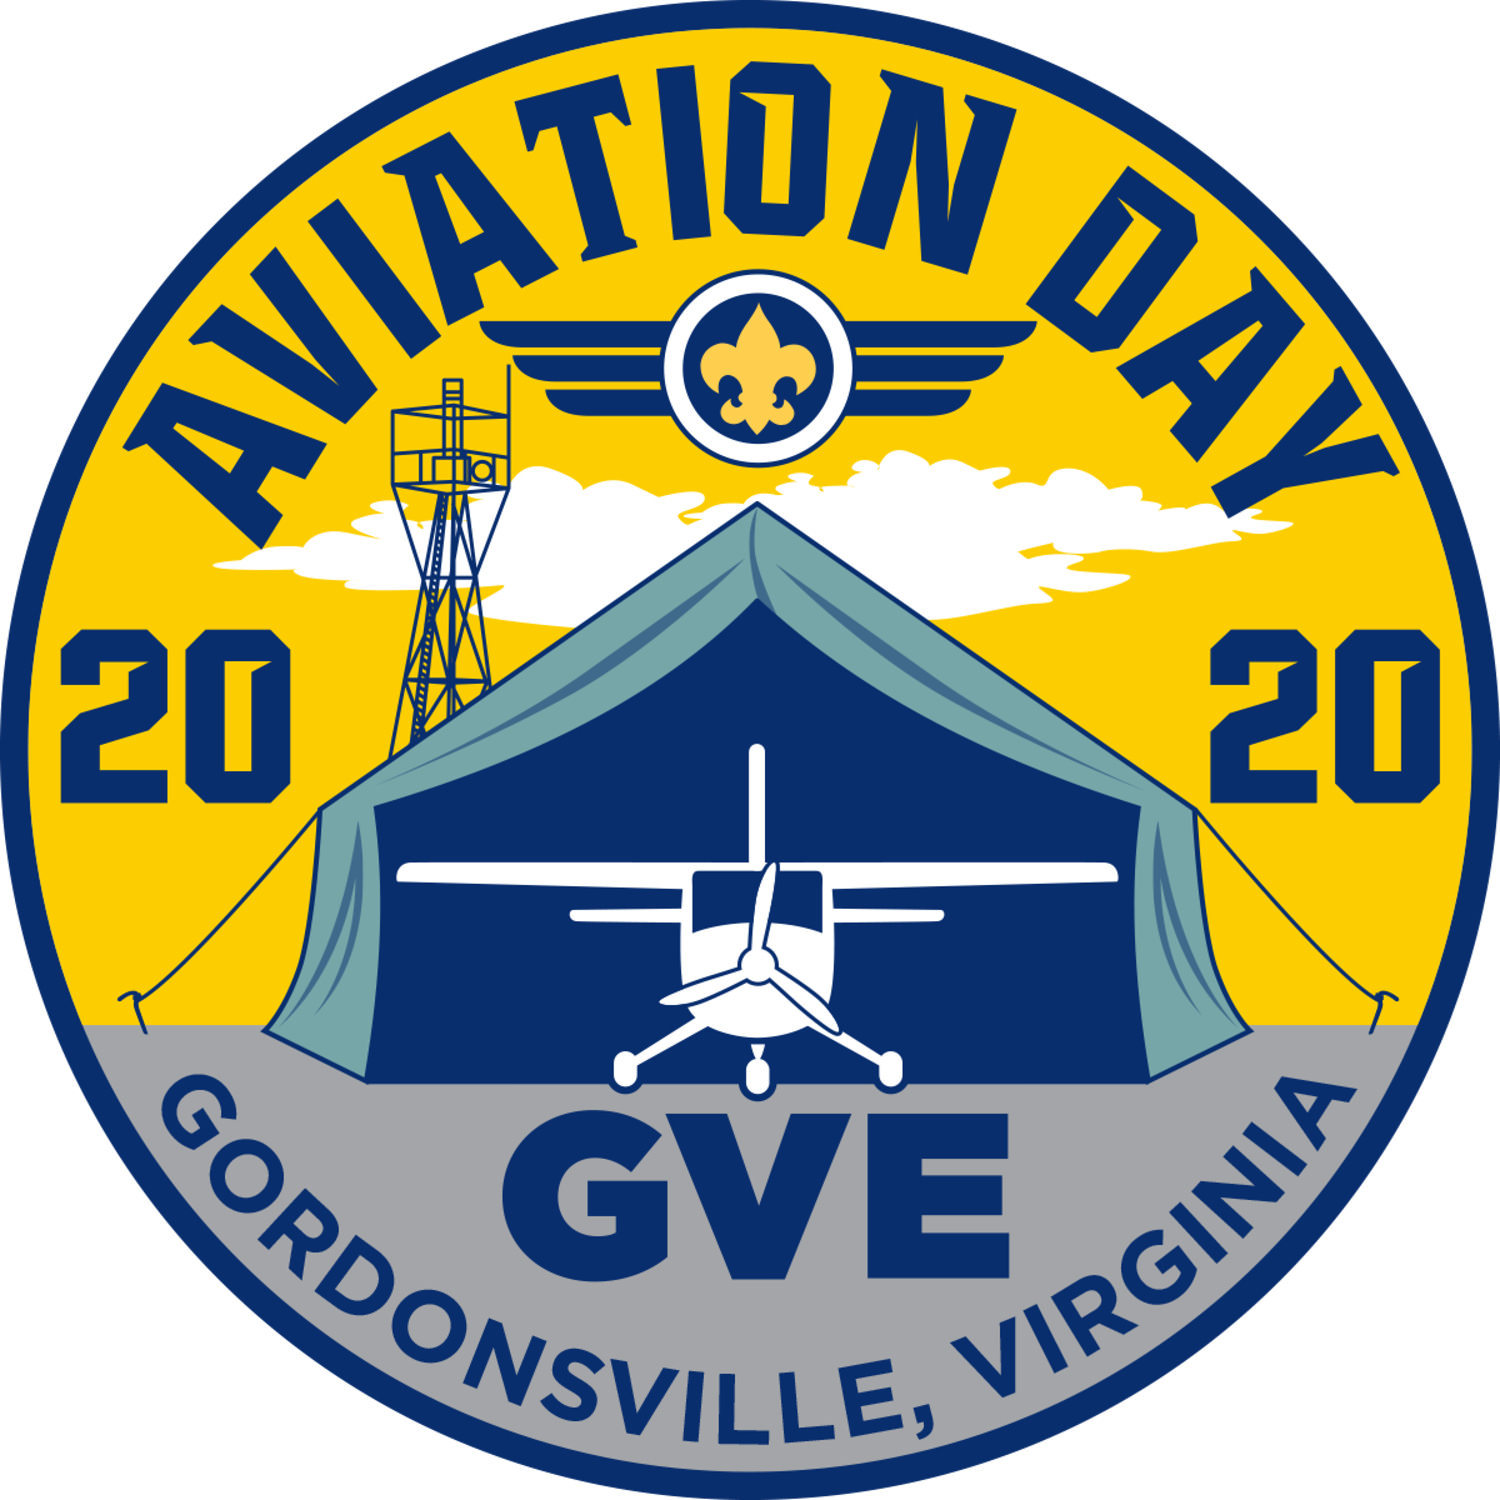 Cub Scout Aviation Day Logo